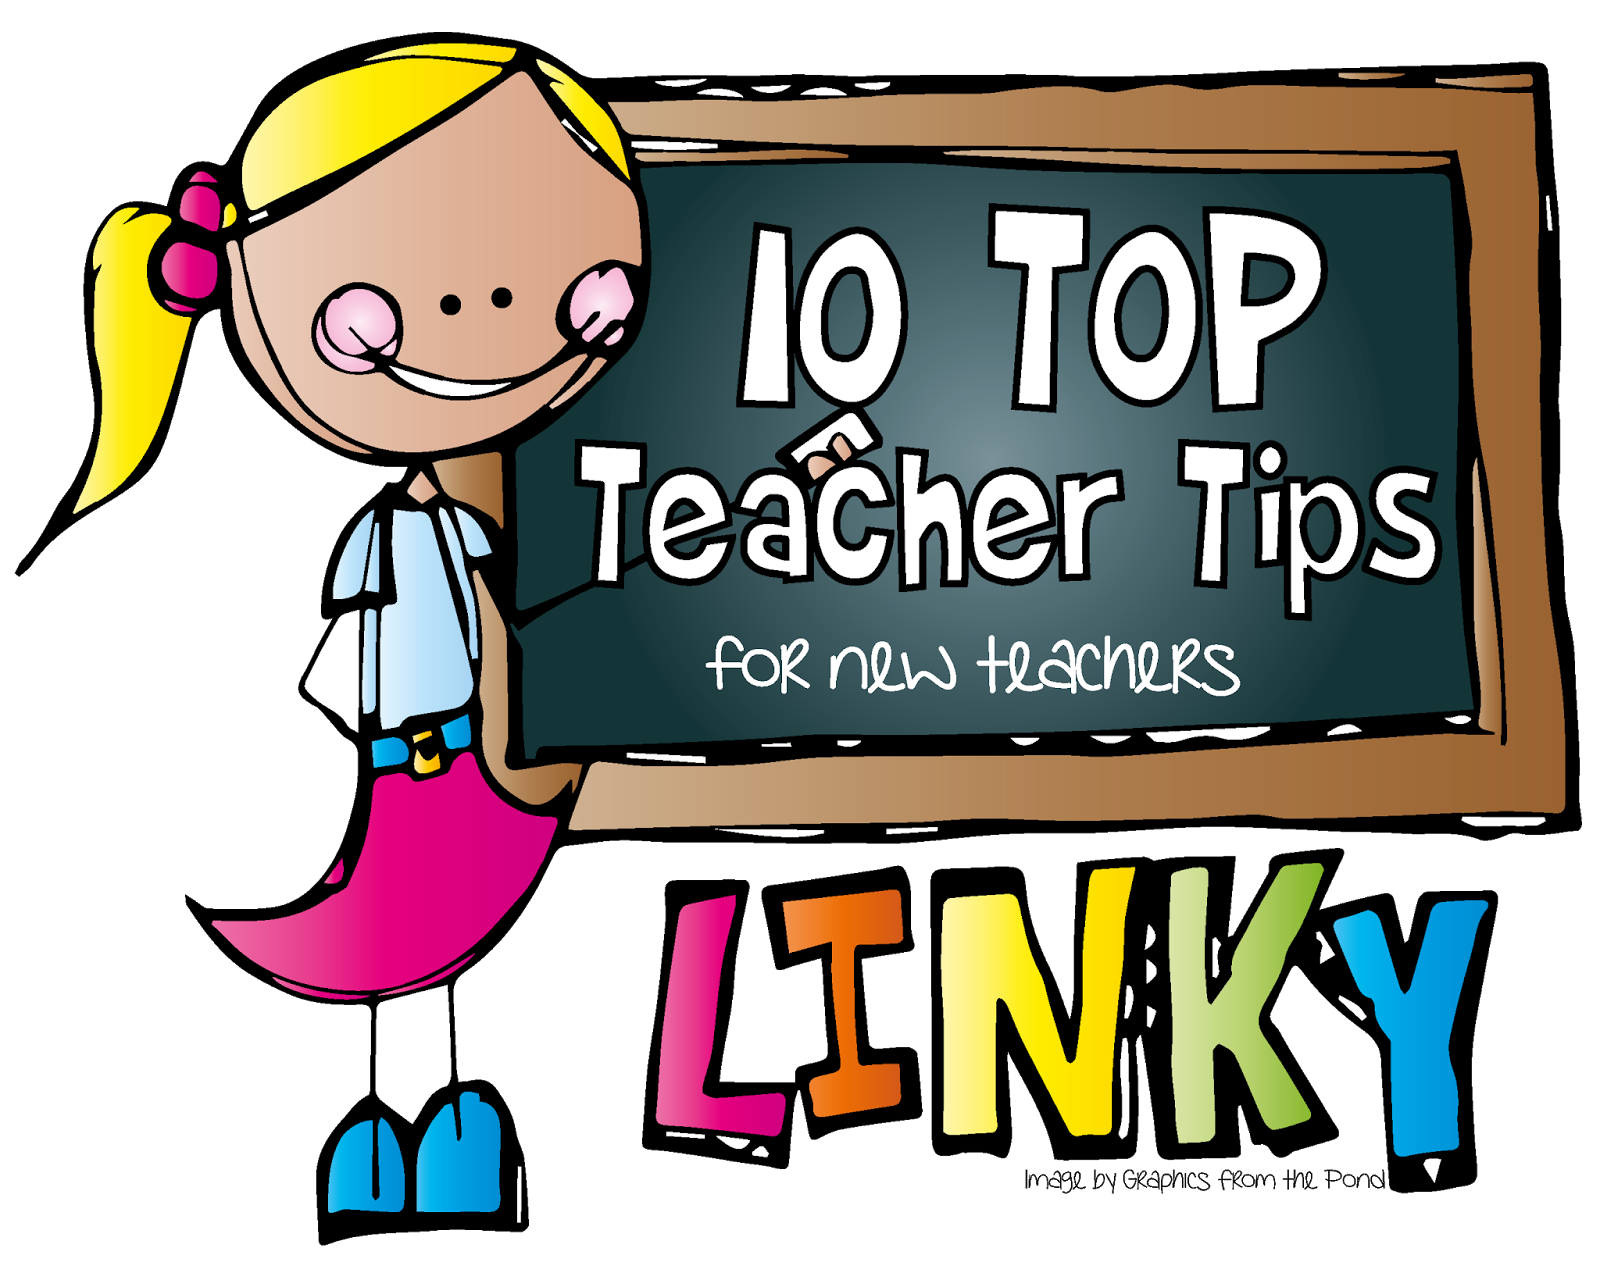 Letterland annie apple clipart clip art freeuse stock Love, Laughter and Learning in Prep!: 10 Top Tips for New Teachers ... clip art freeuse stock